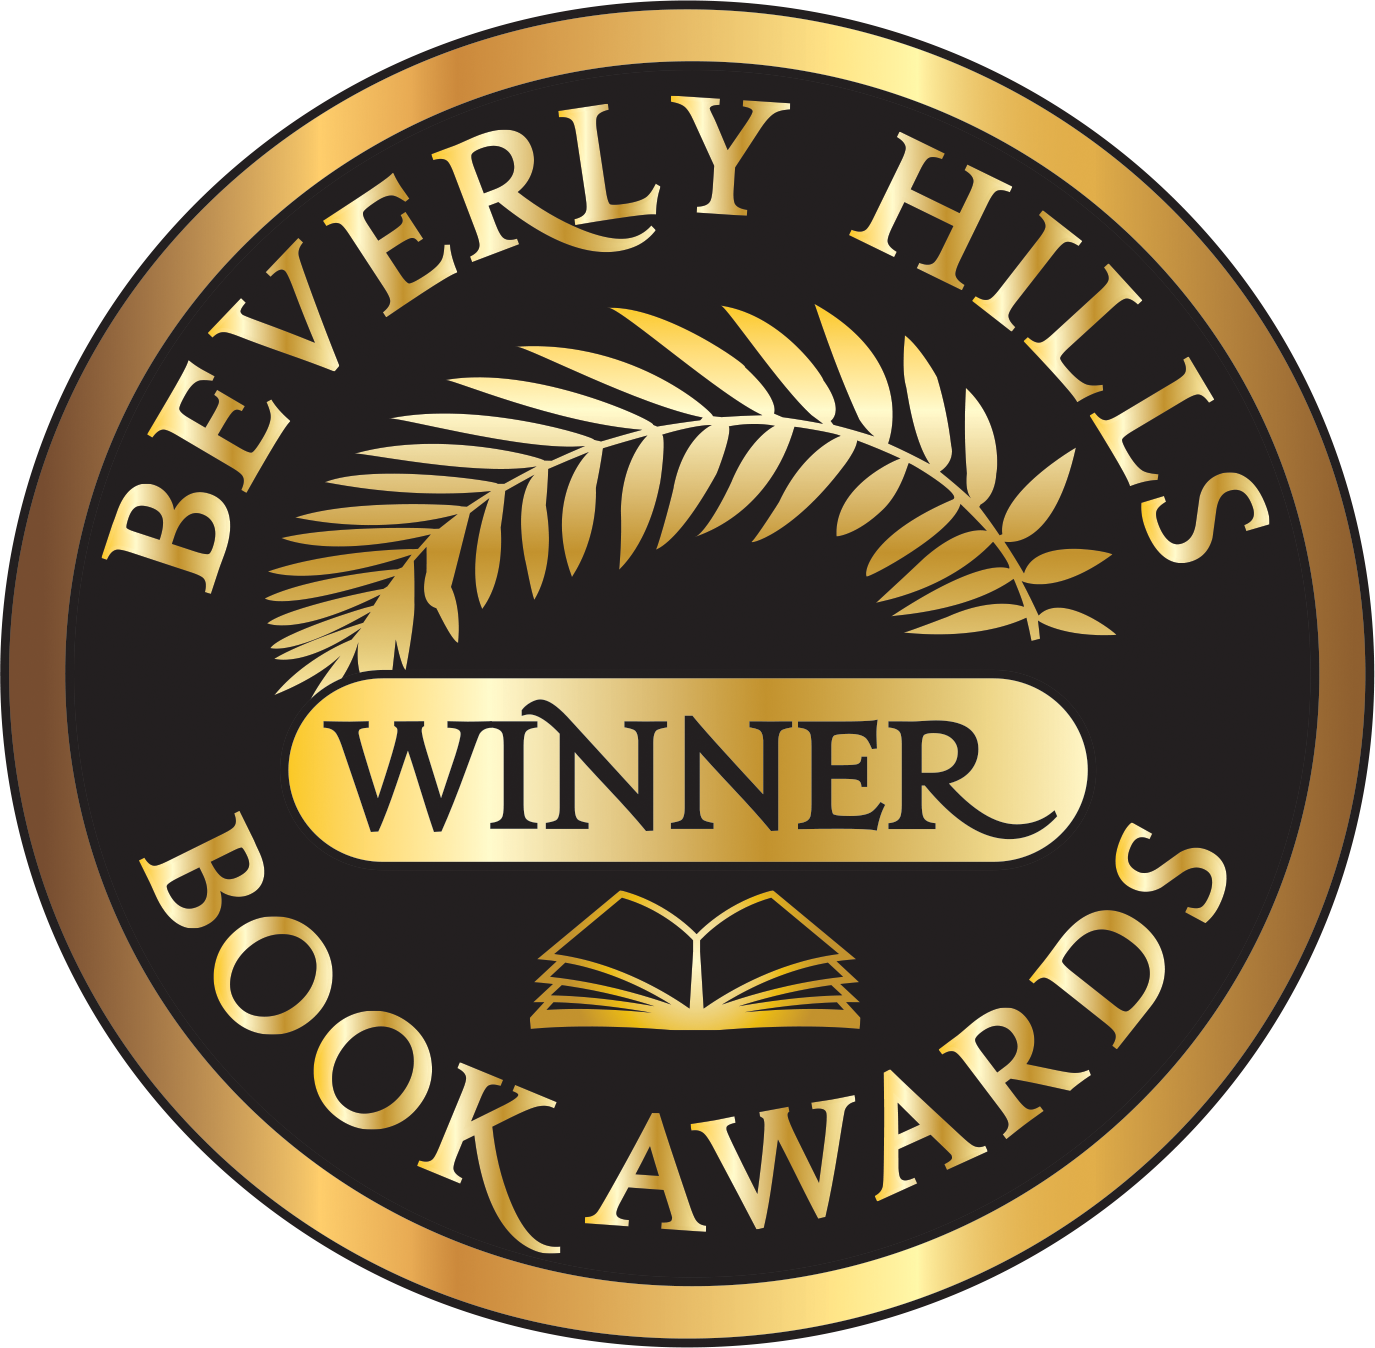 The Beverly Hill Book Award Winner Seal